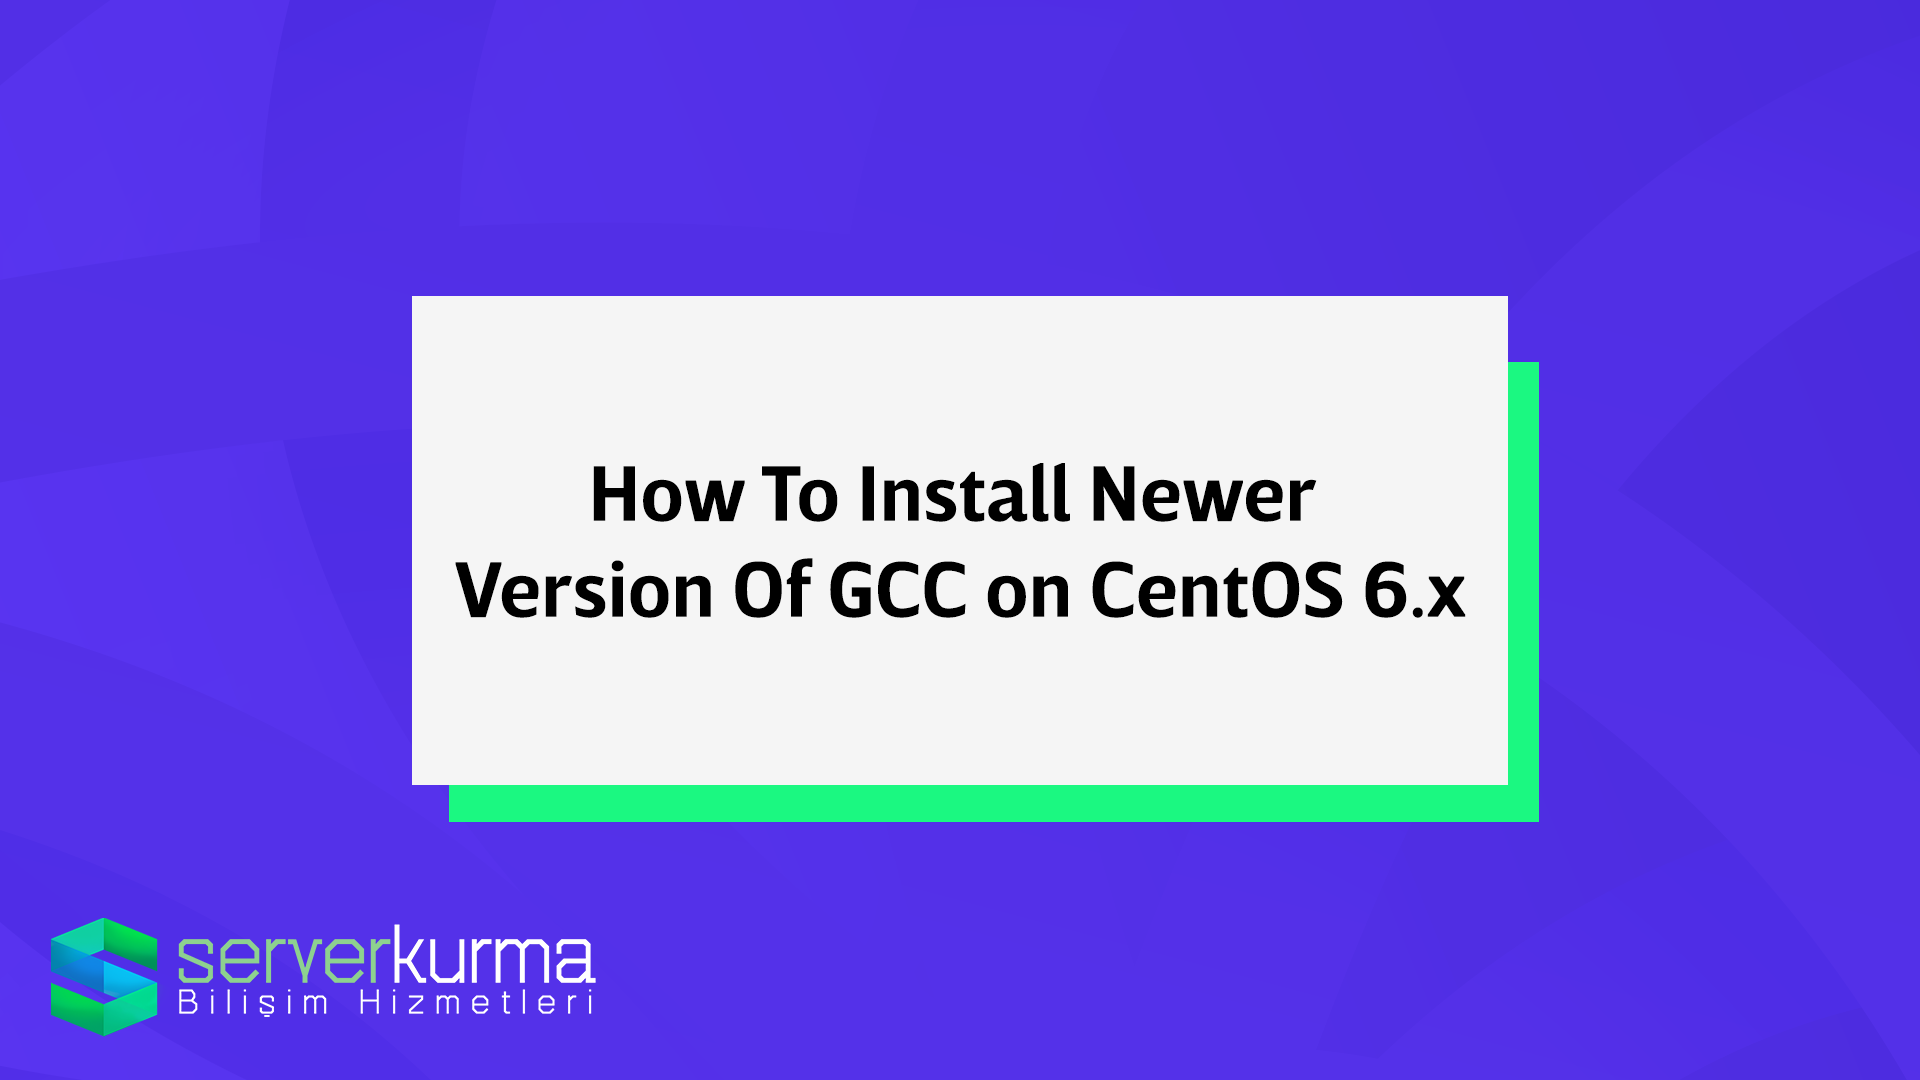 How To Install Newer Version Of GCC on CentOS 6 x